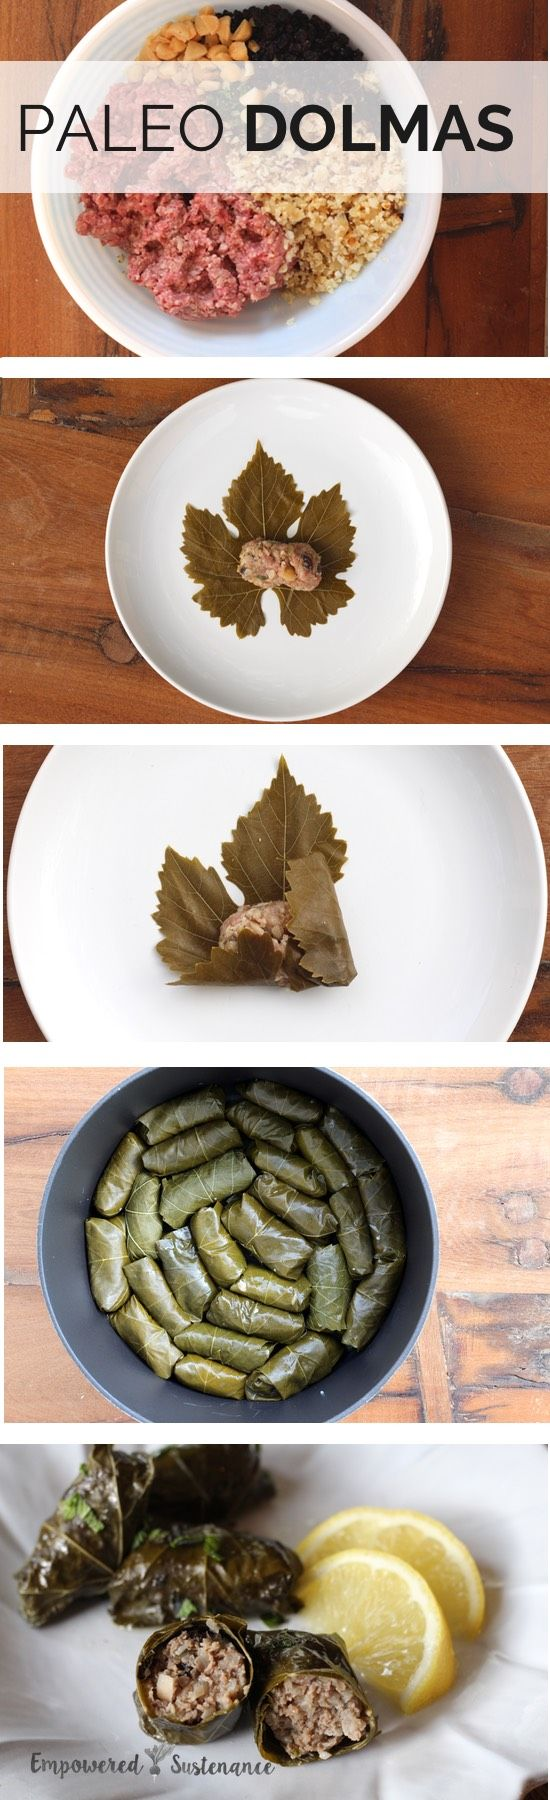 Easy recipe for paleo dolmas, which uses cauliflower rice instead of white rice.